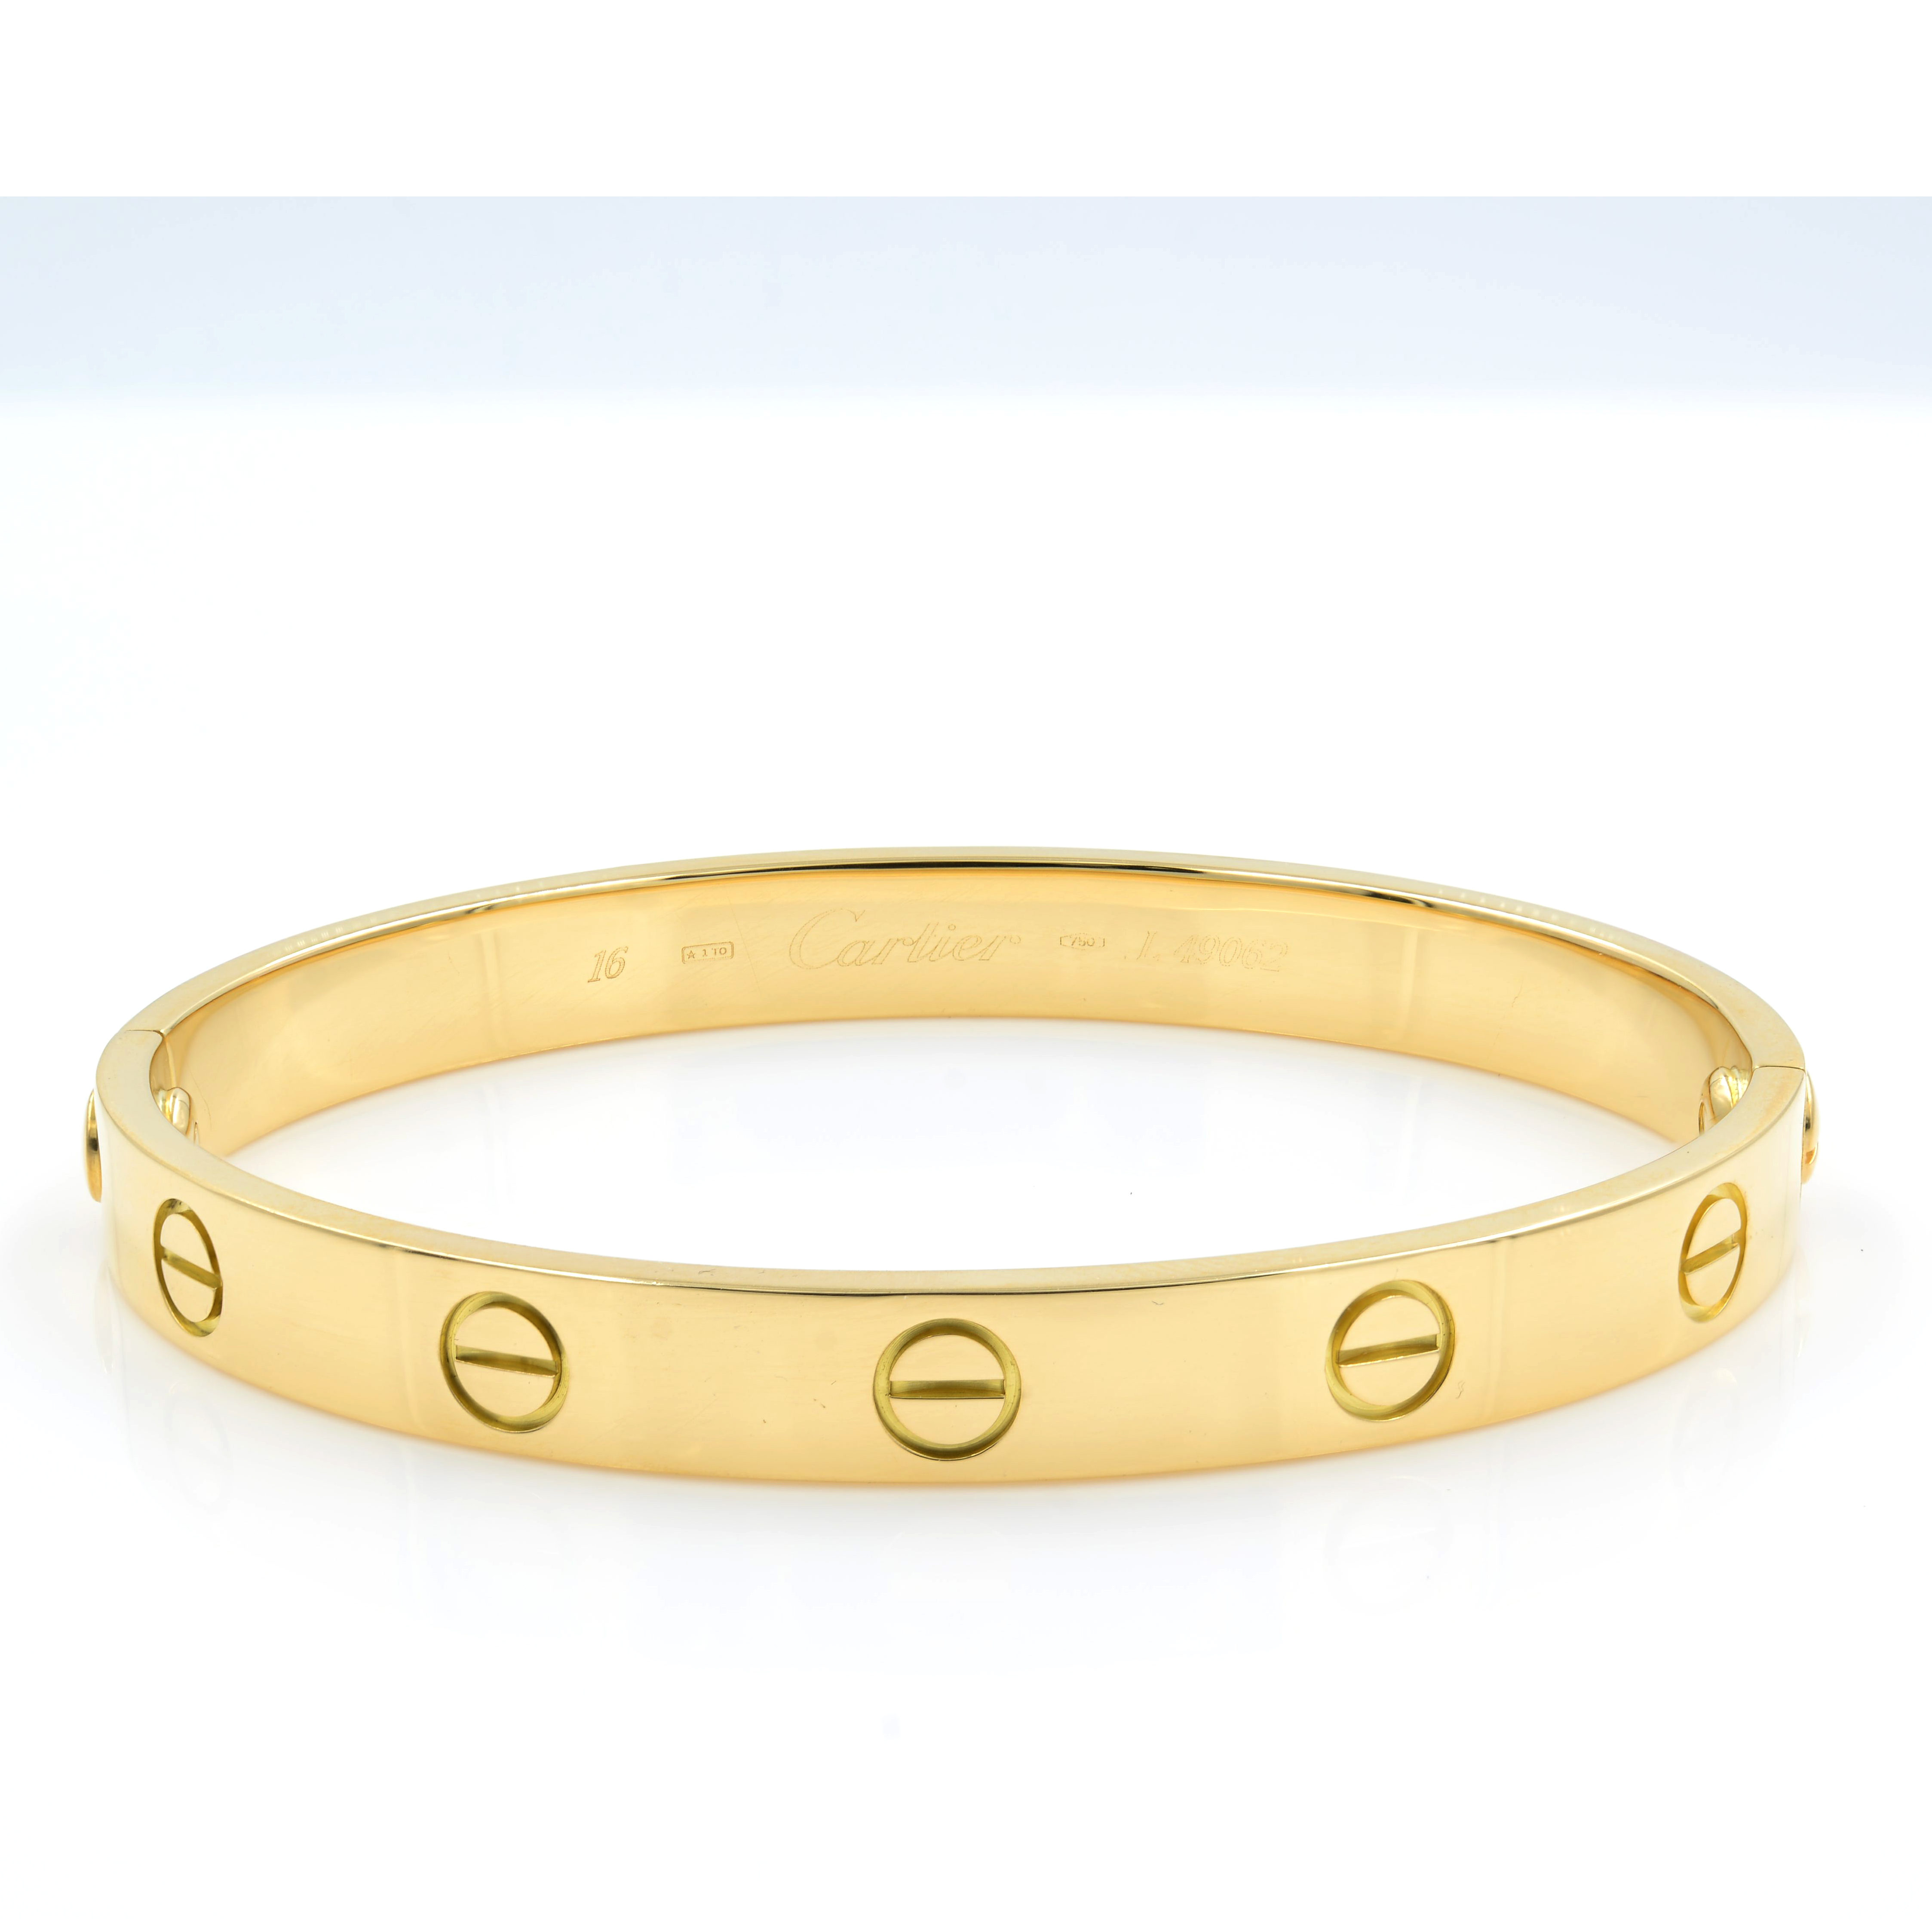 Image Is Loading Cartier Love Bracelet Size 16 18k Yellow Gold